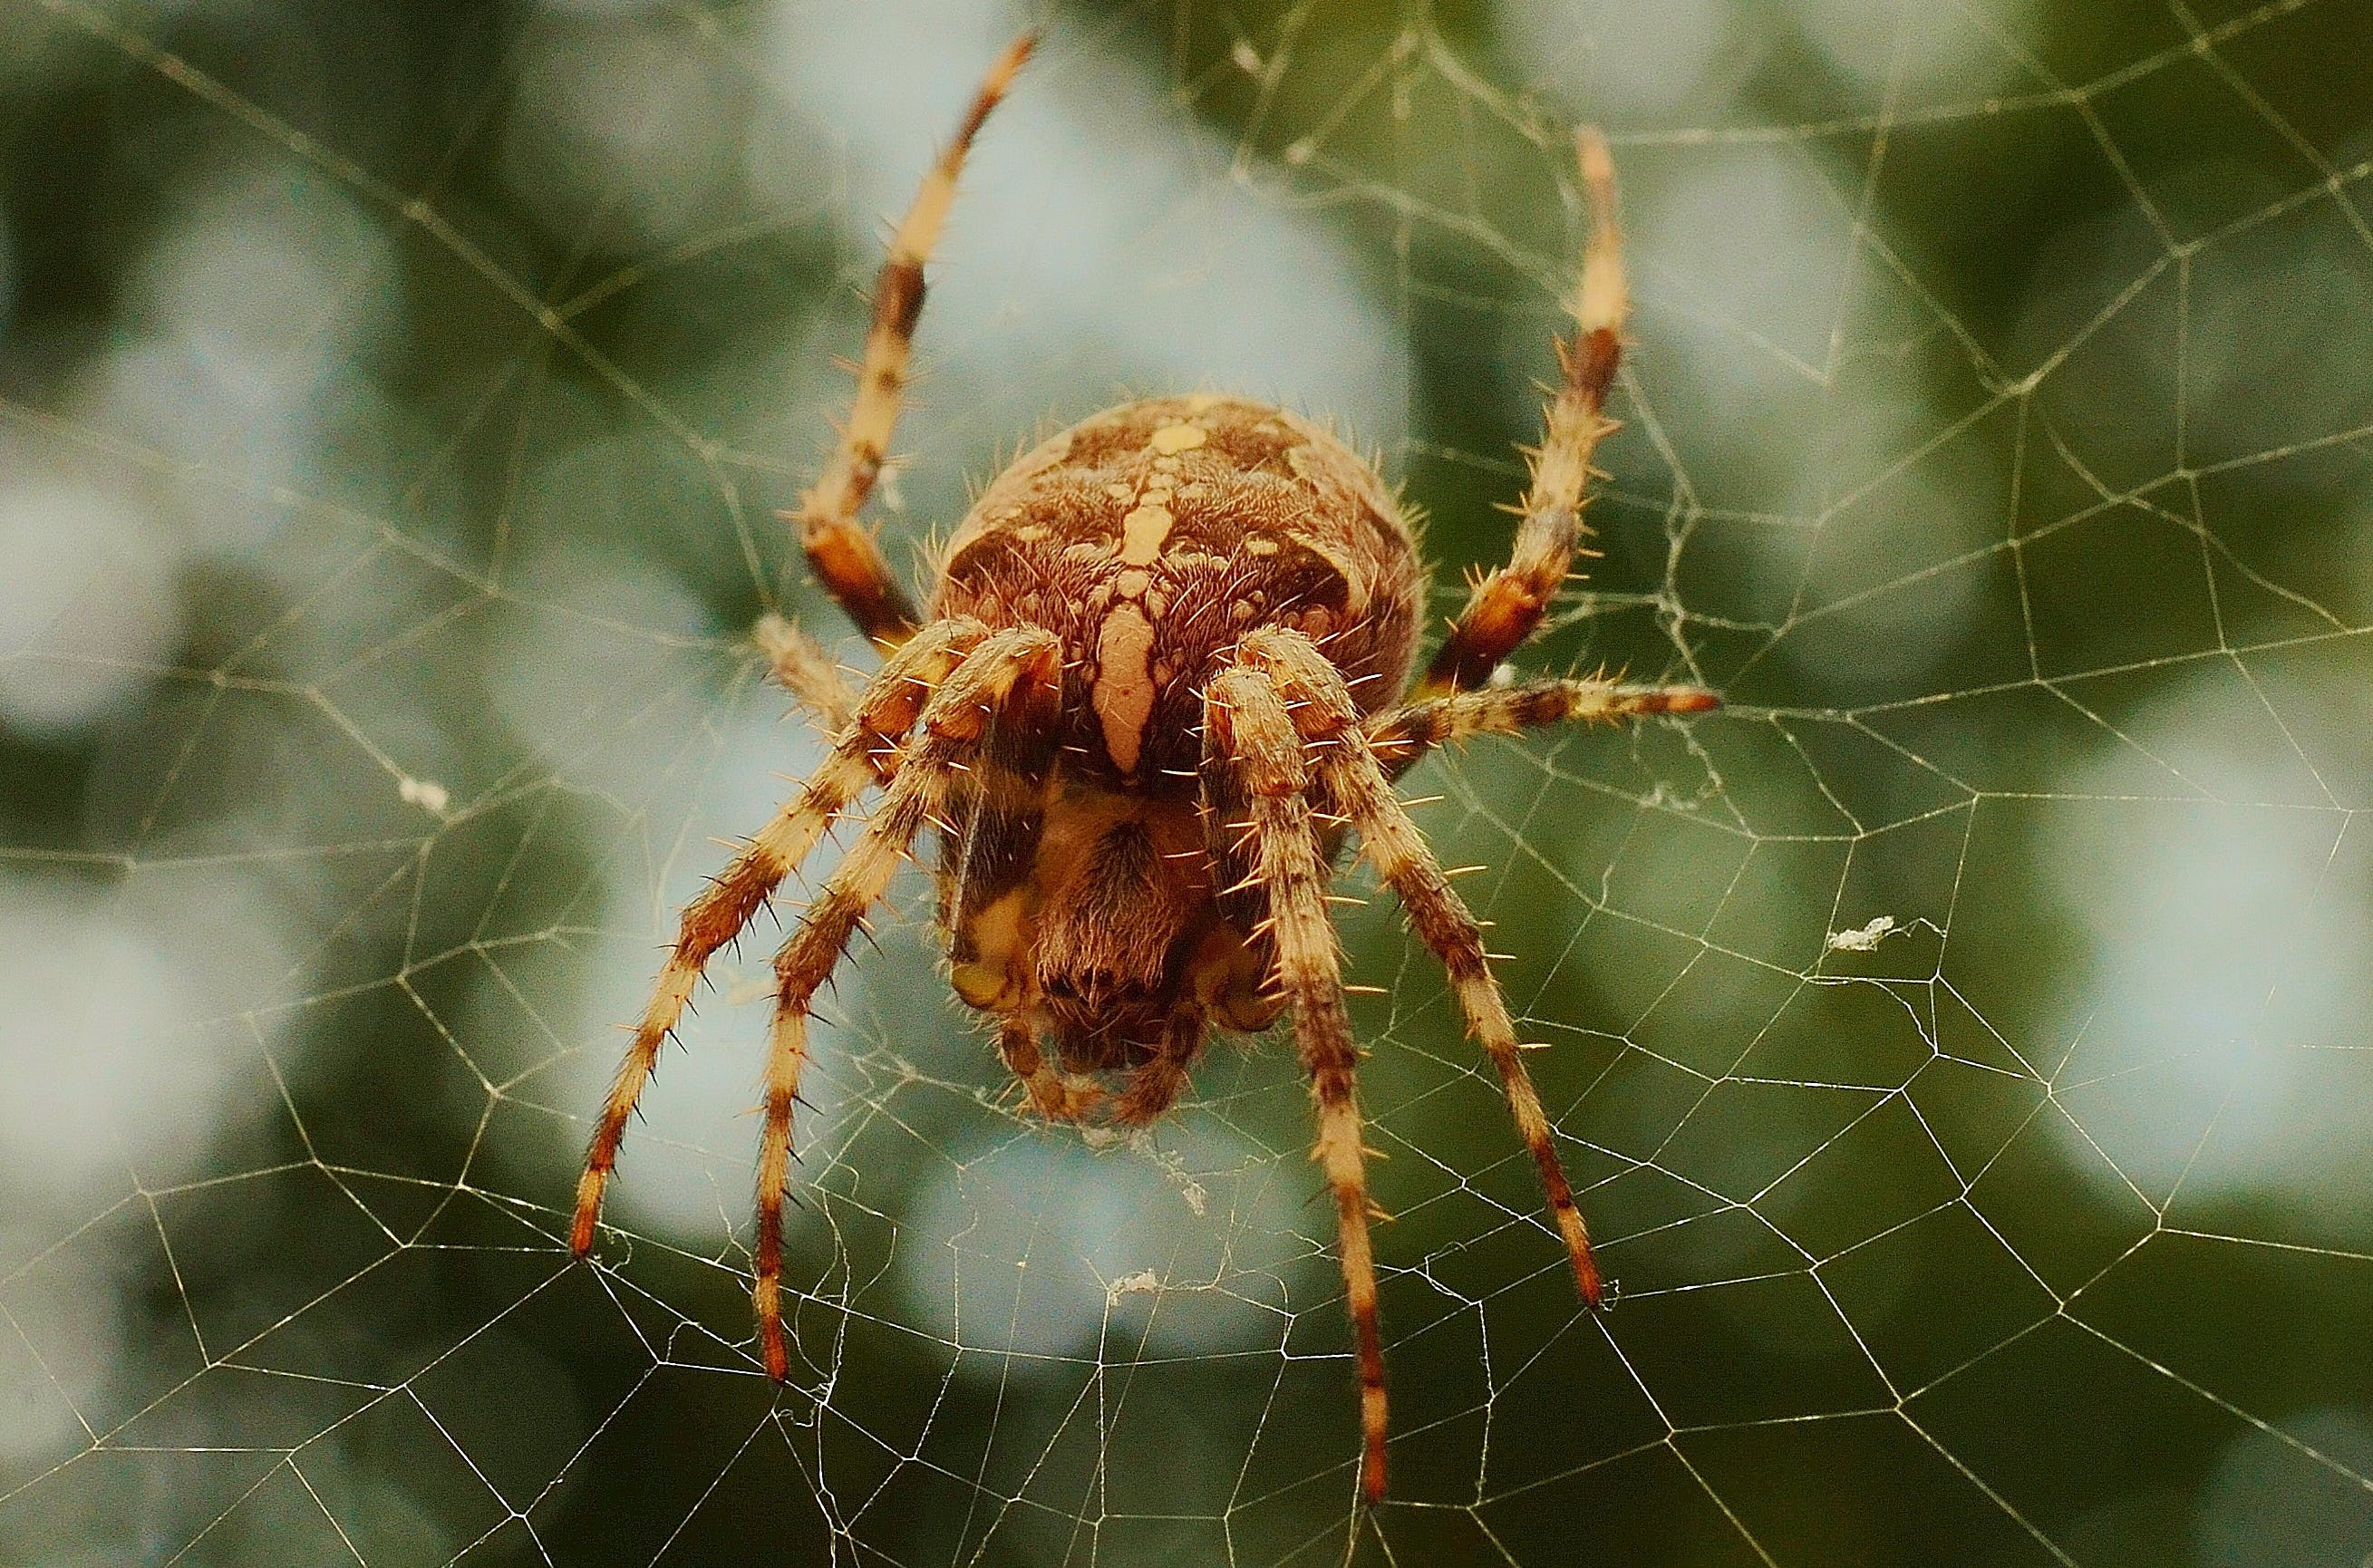 Free stock photo of insect, cobweb, spider, spider's web